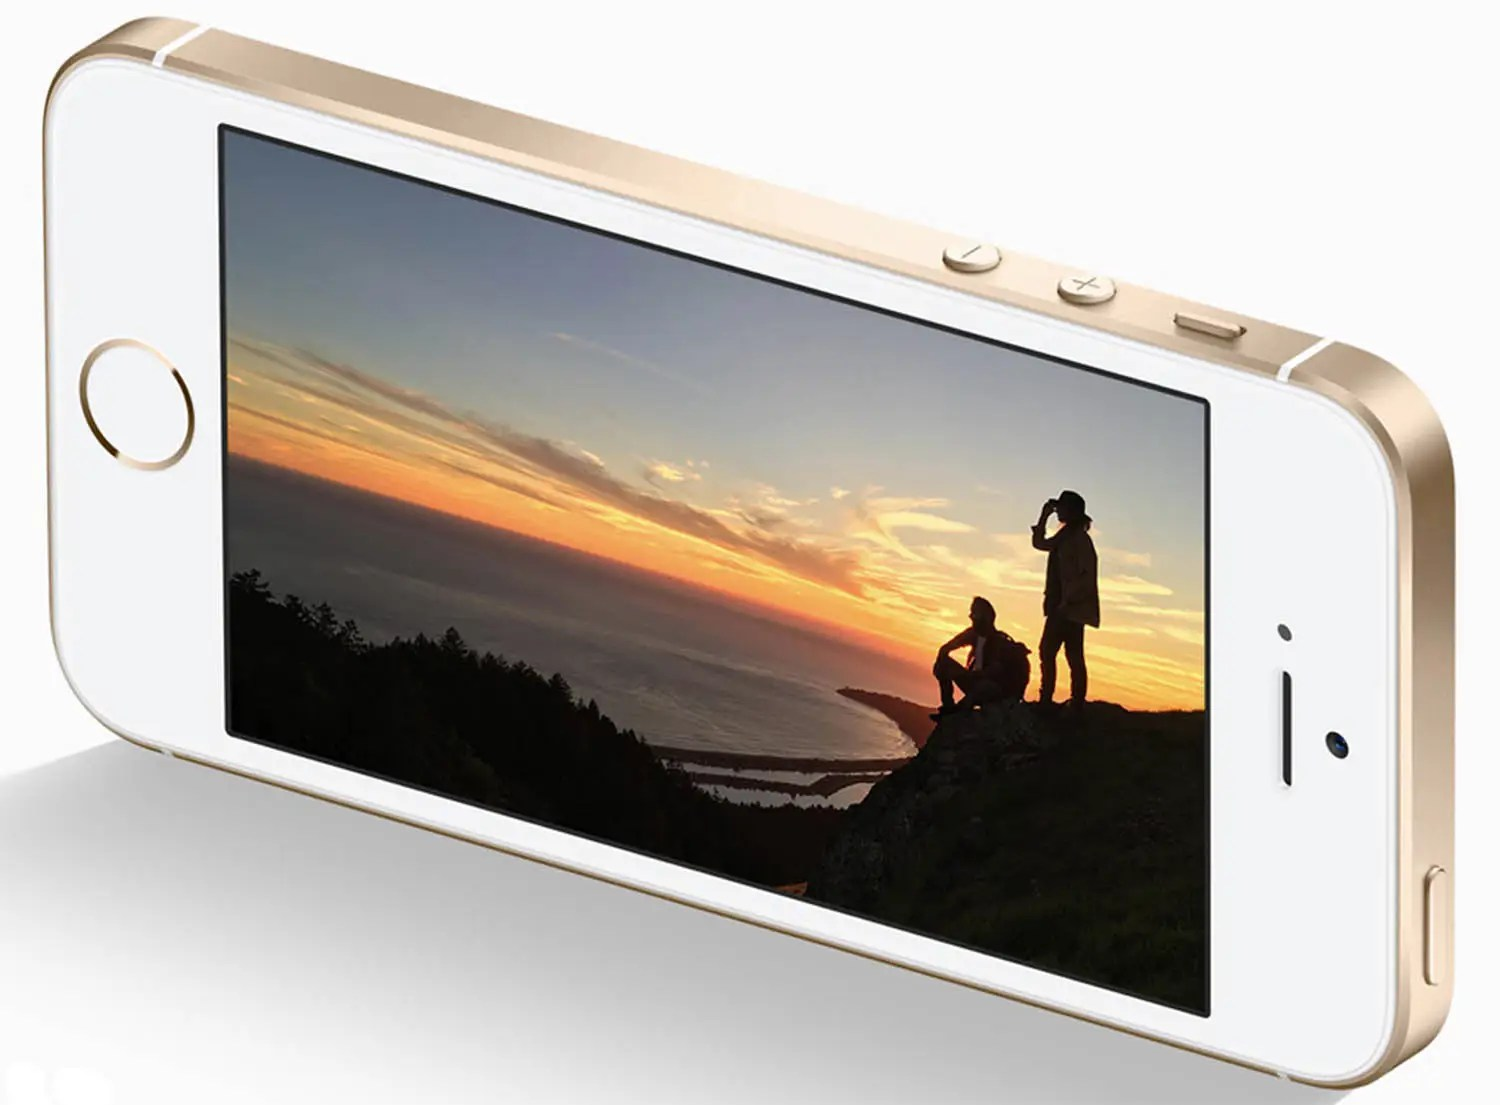 3. Like other iPhones and major Android phones, it's got a killer camera.